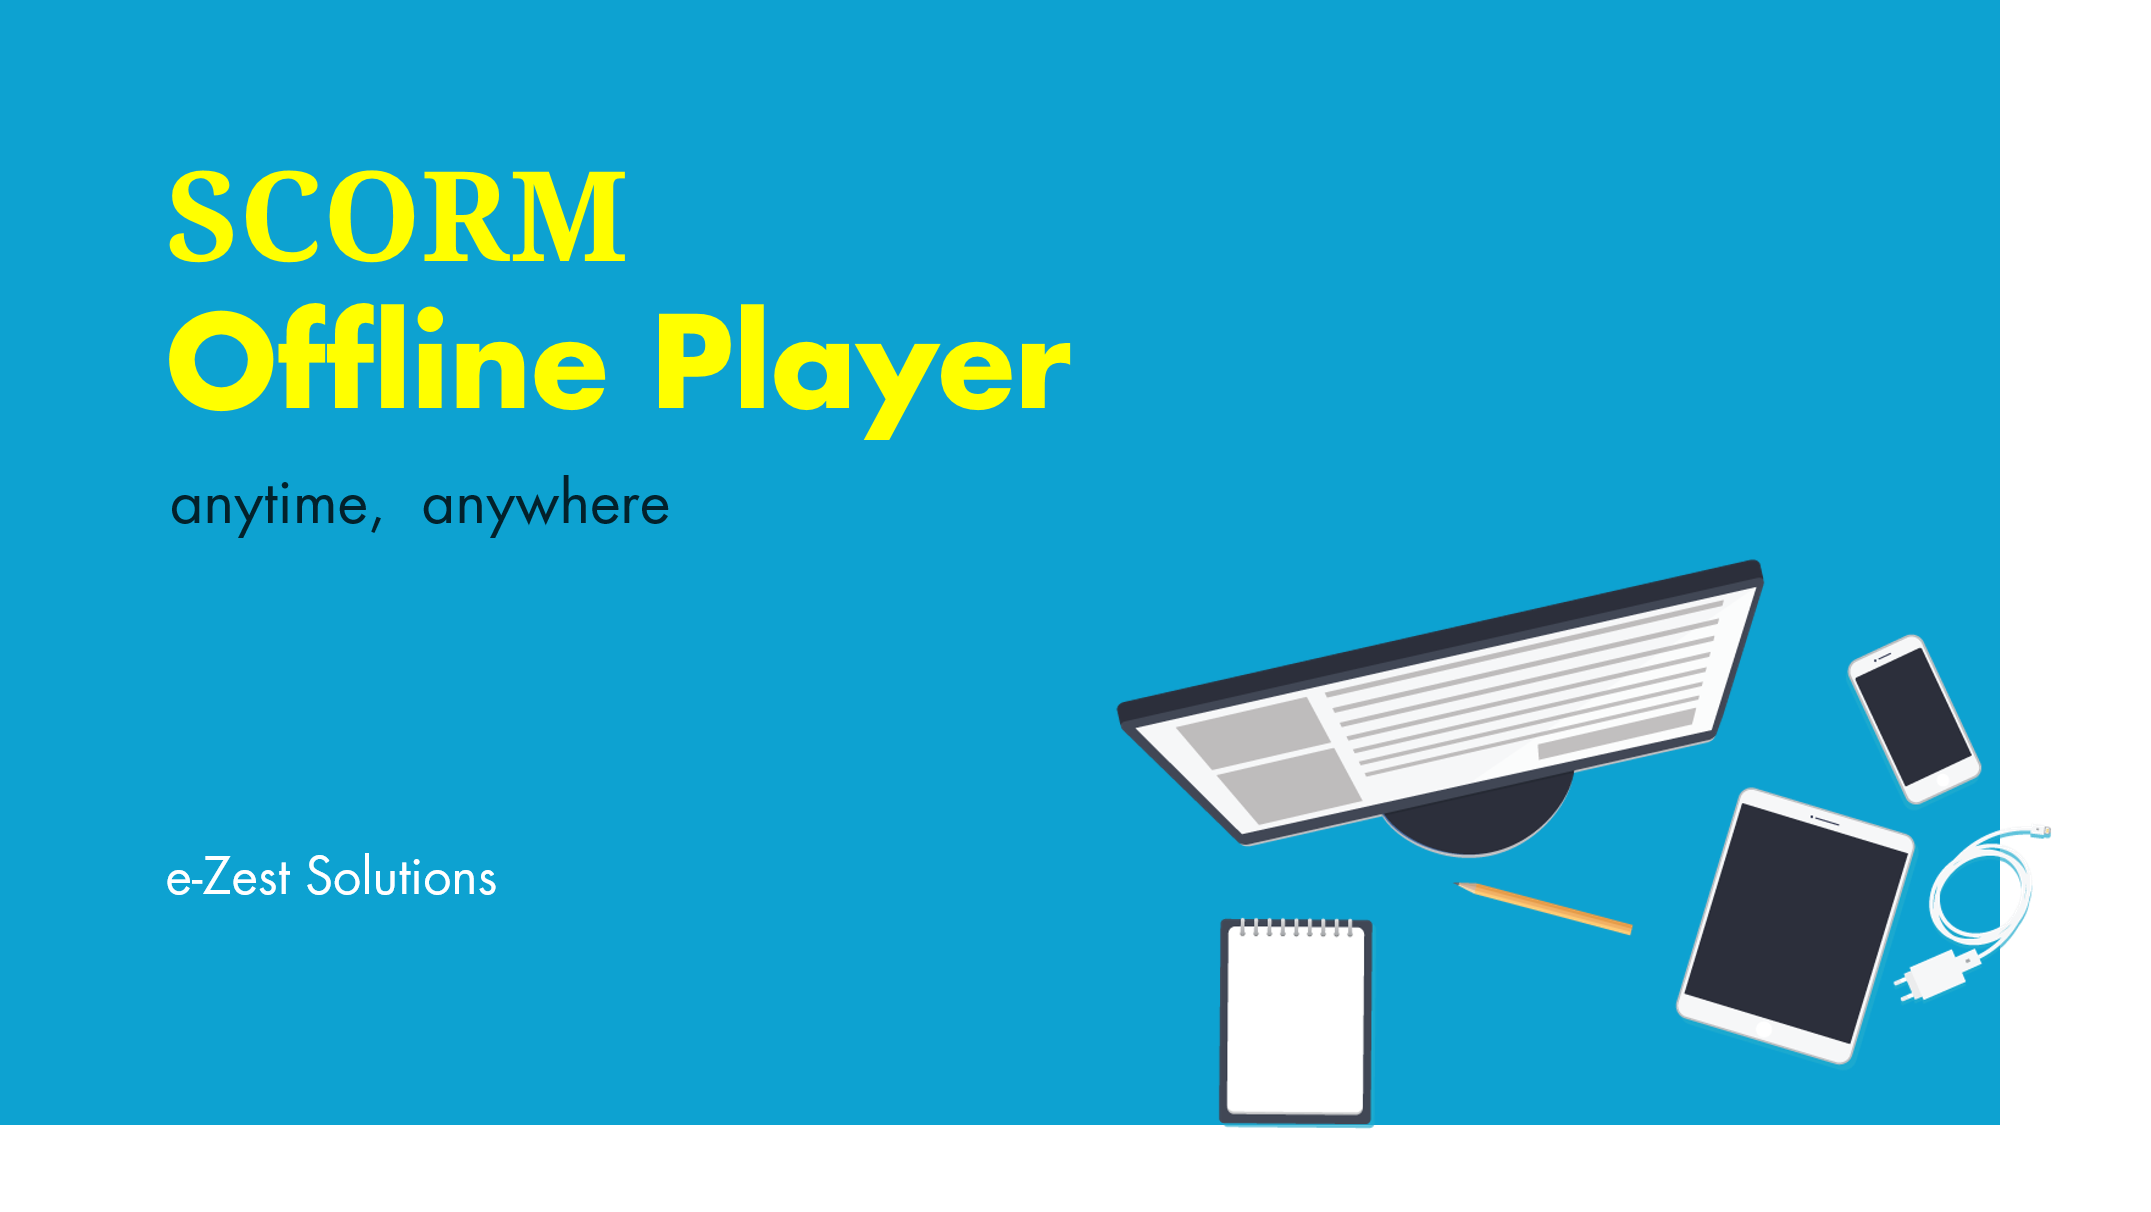 SCORM Offline Player picture